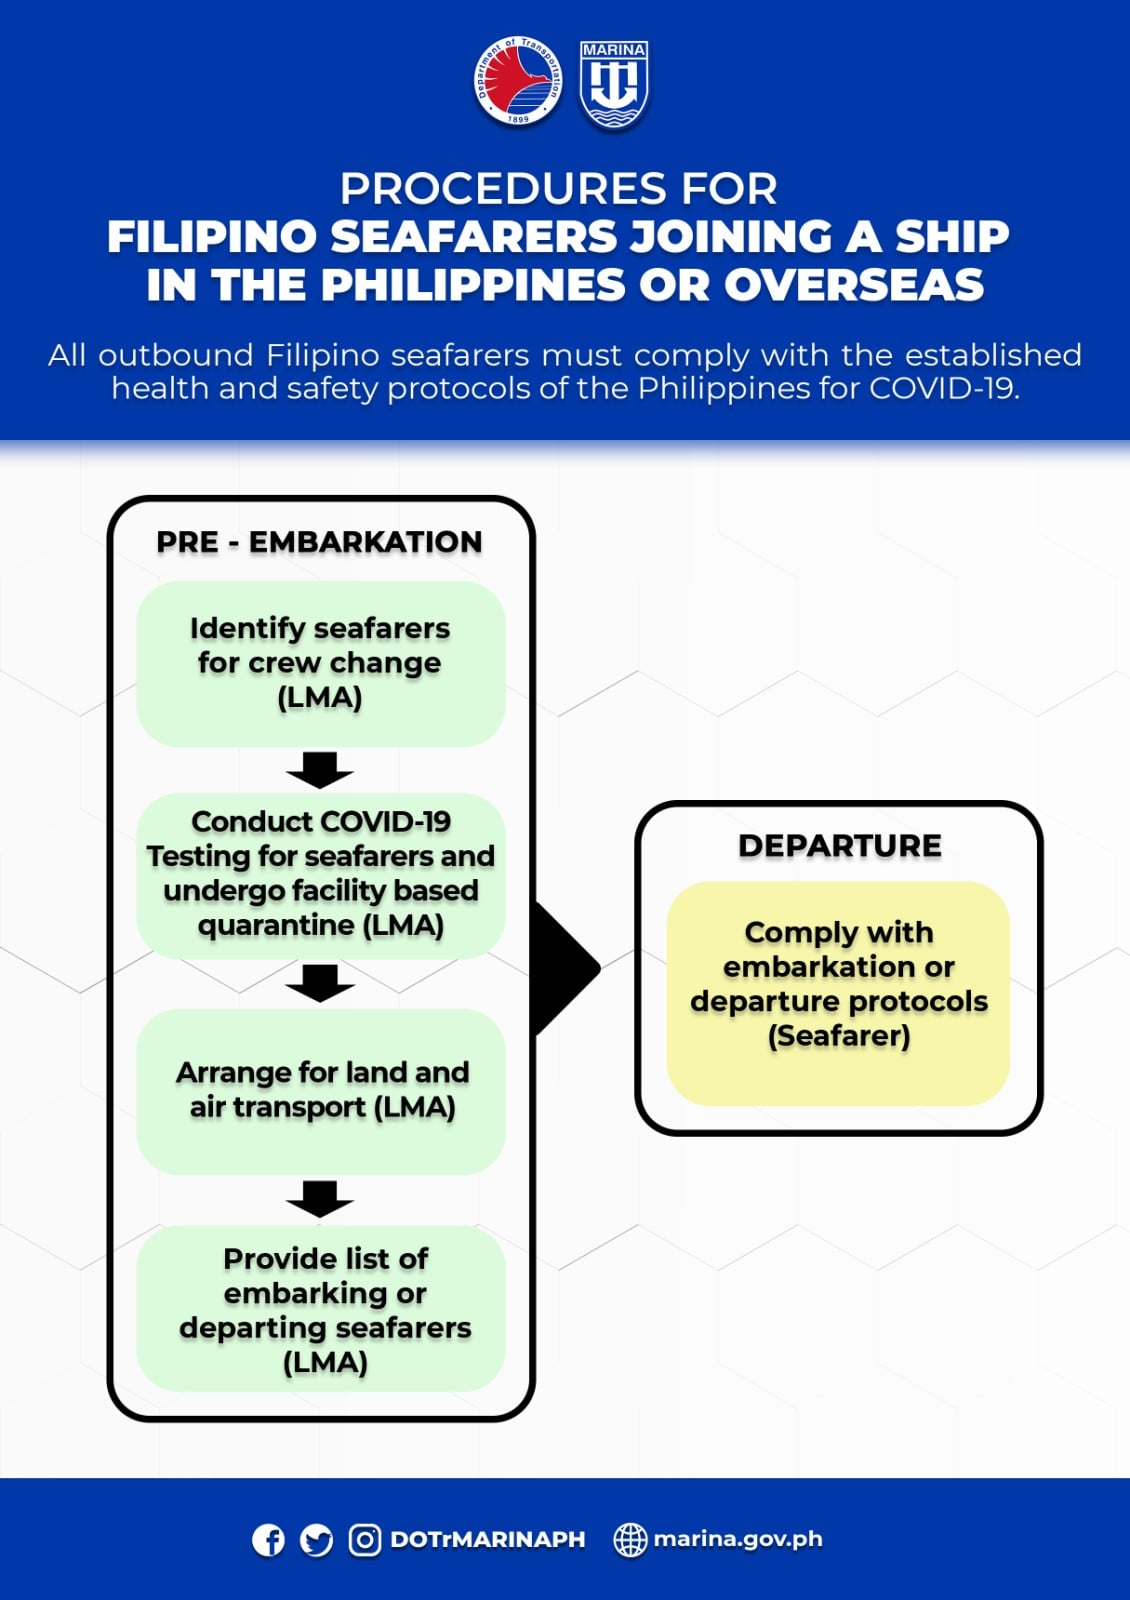 MARINA Filipino Seafarers Joining a Ship in the Philippines or Overseas